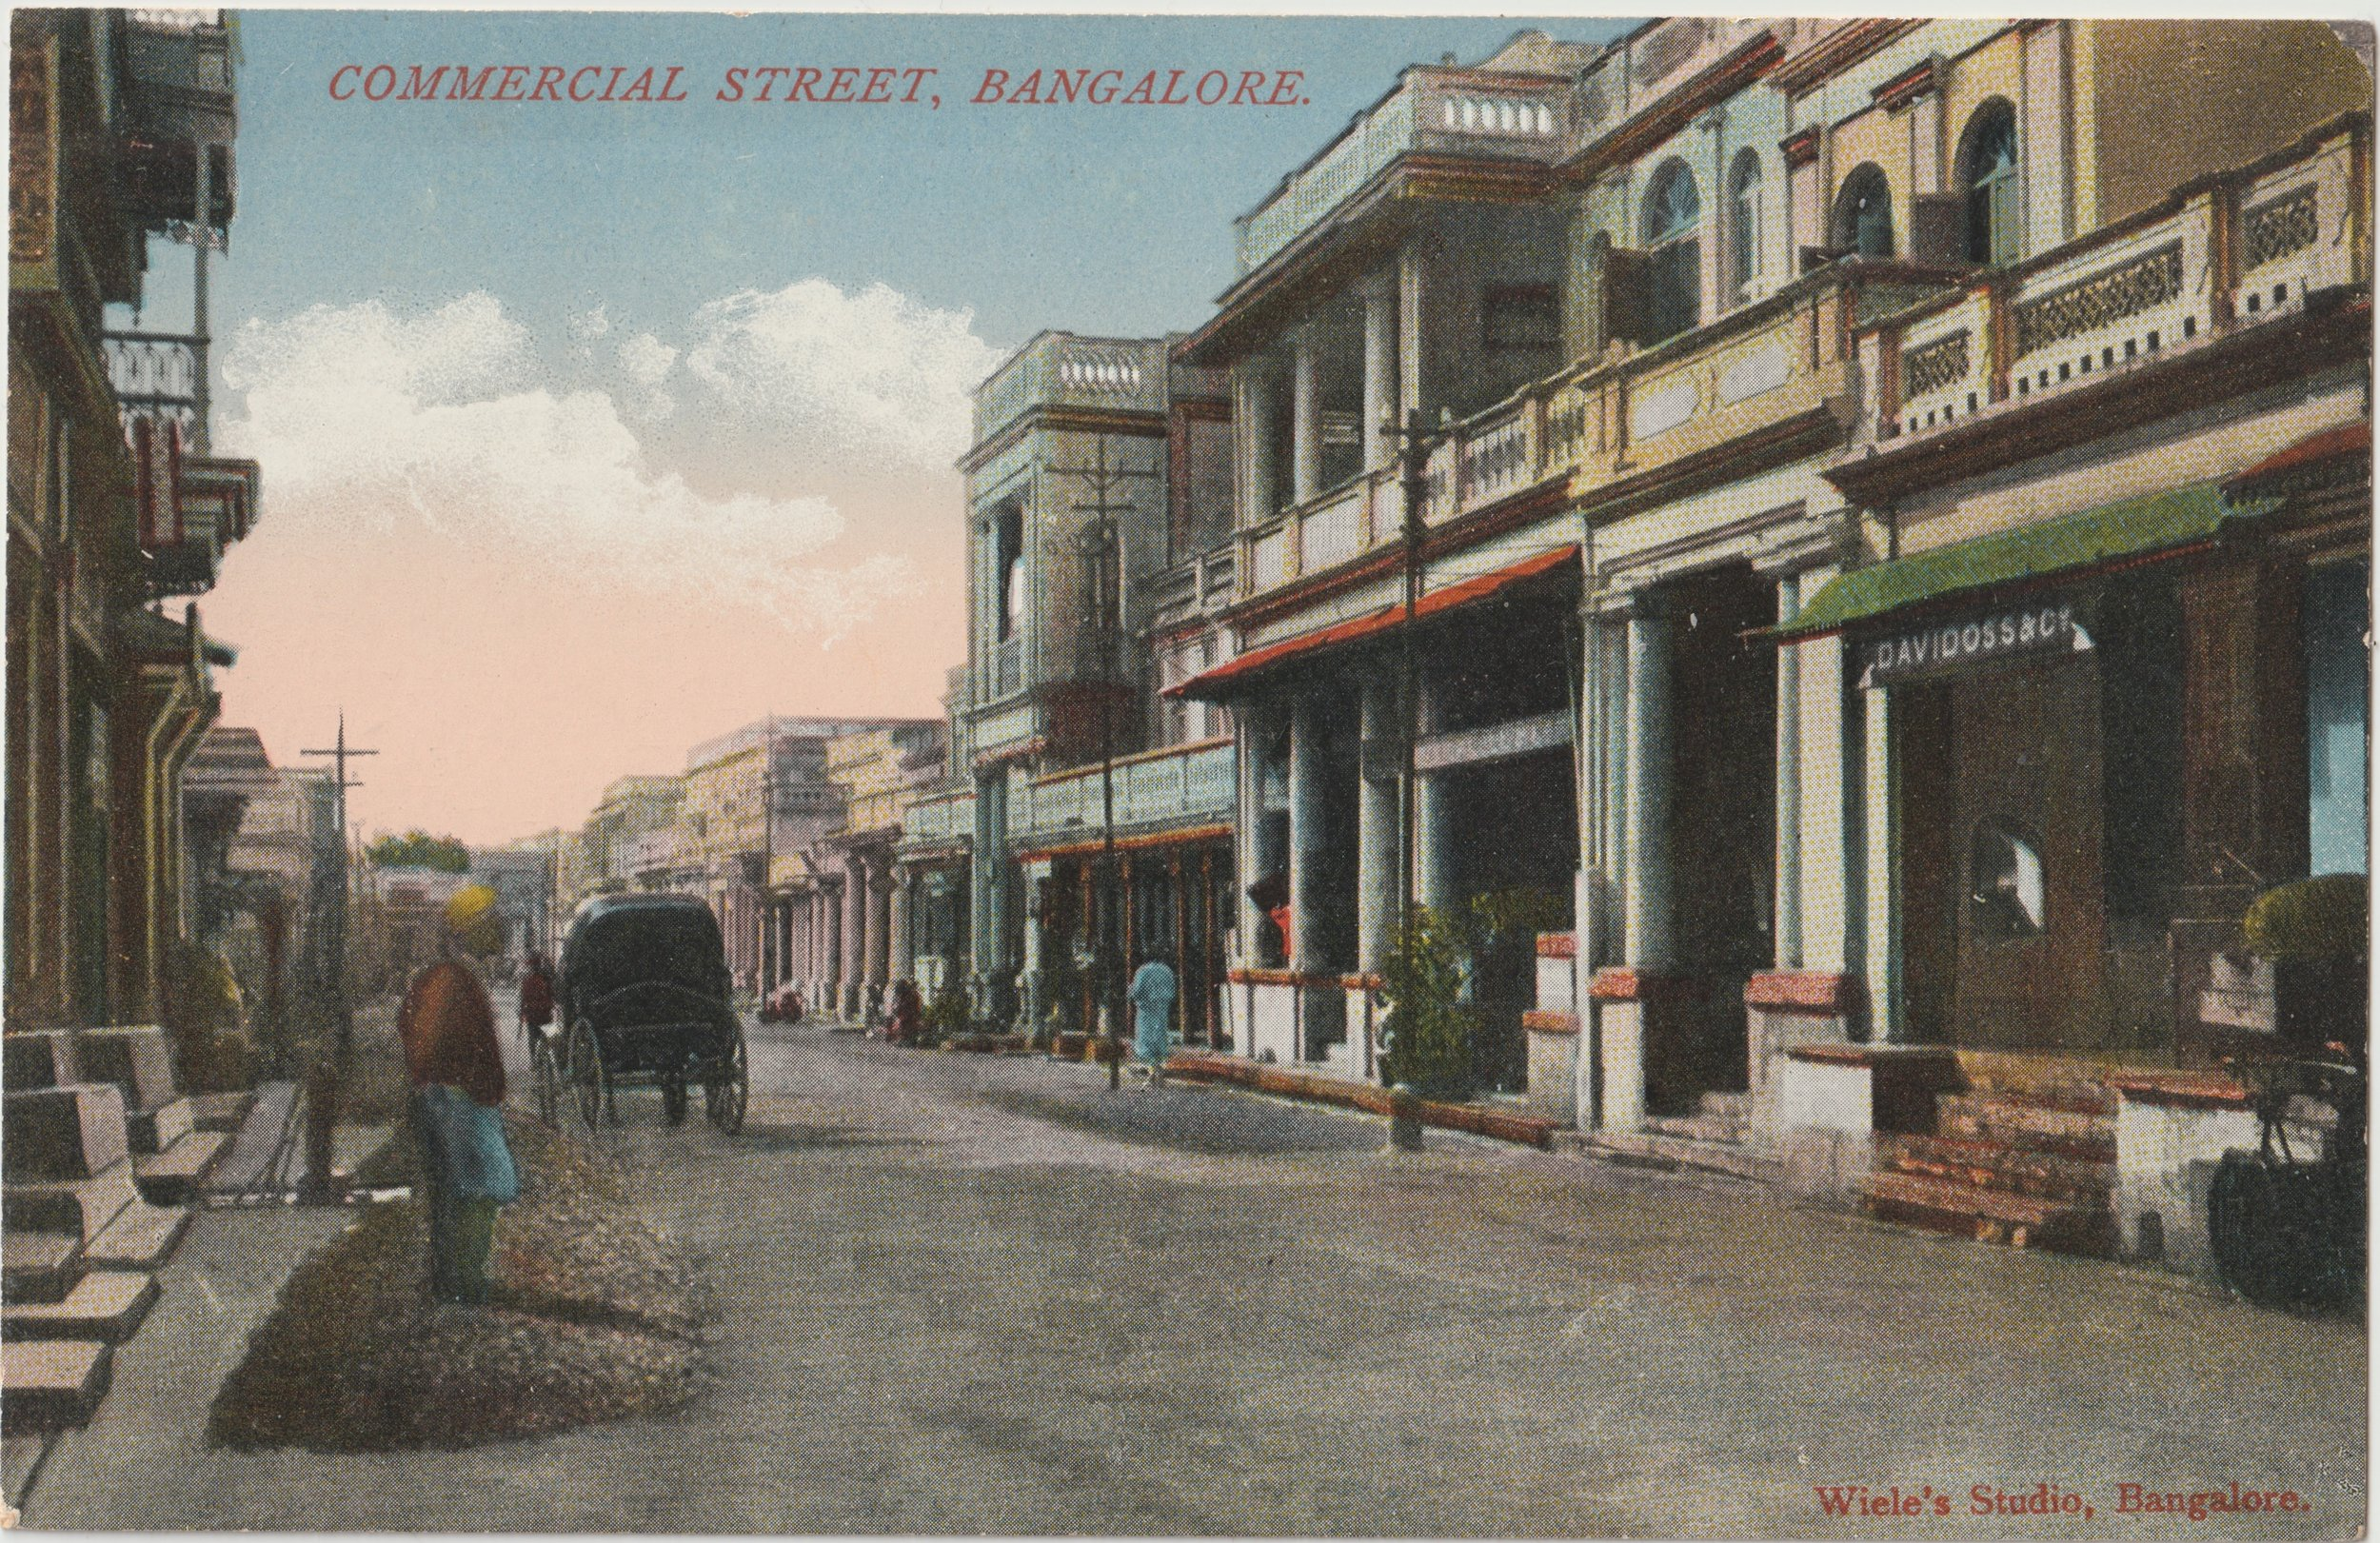 """Commercial Street, Bangalore"". Published by Wiele's Studio, Bangalore. Early 20th century."